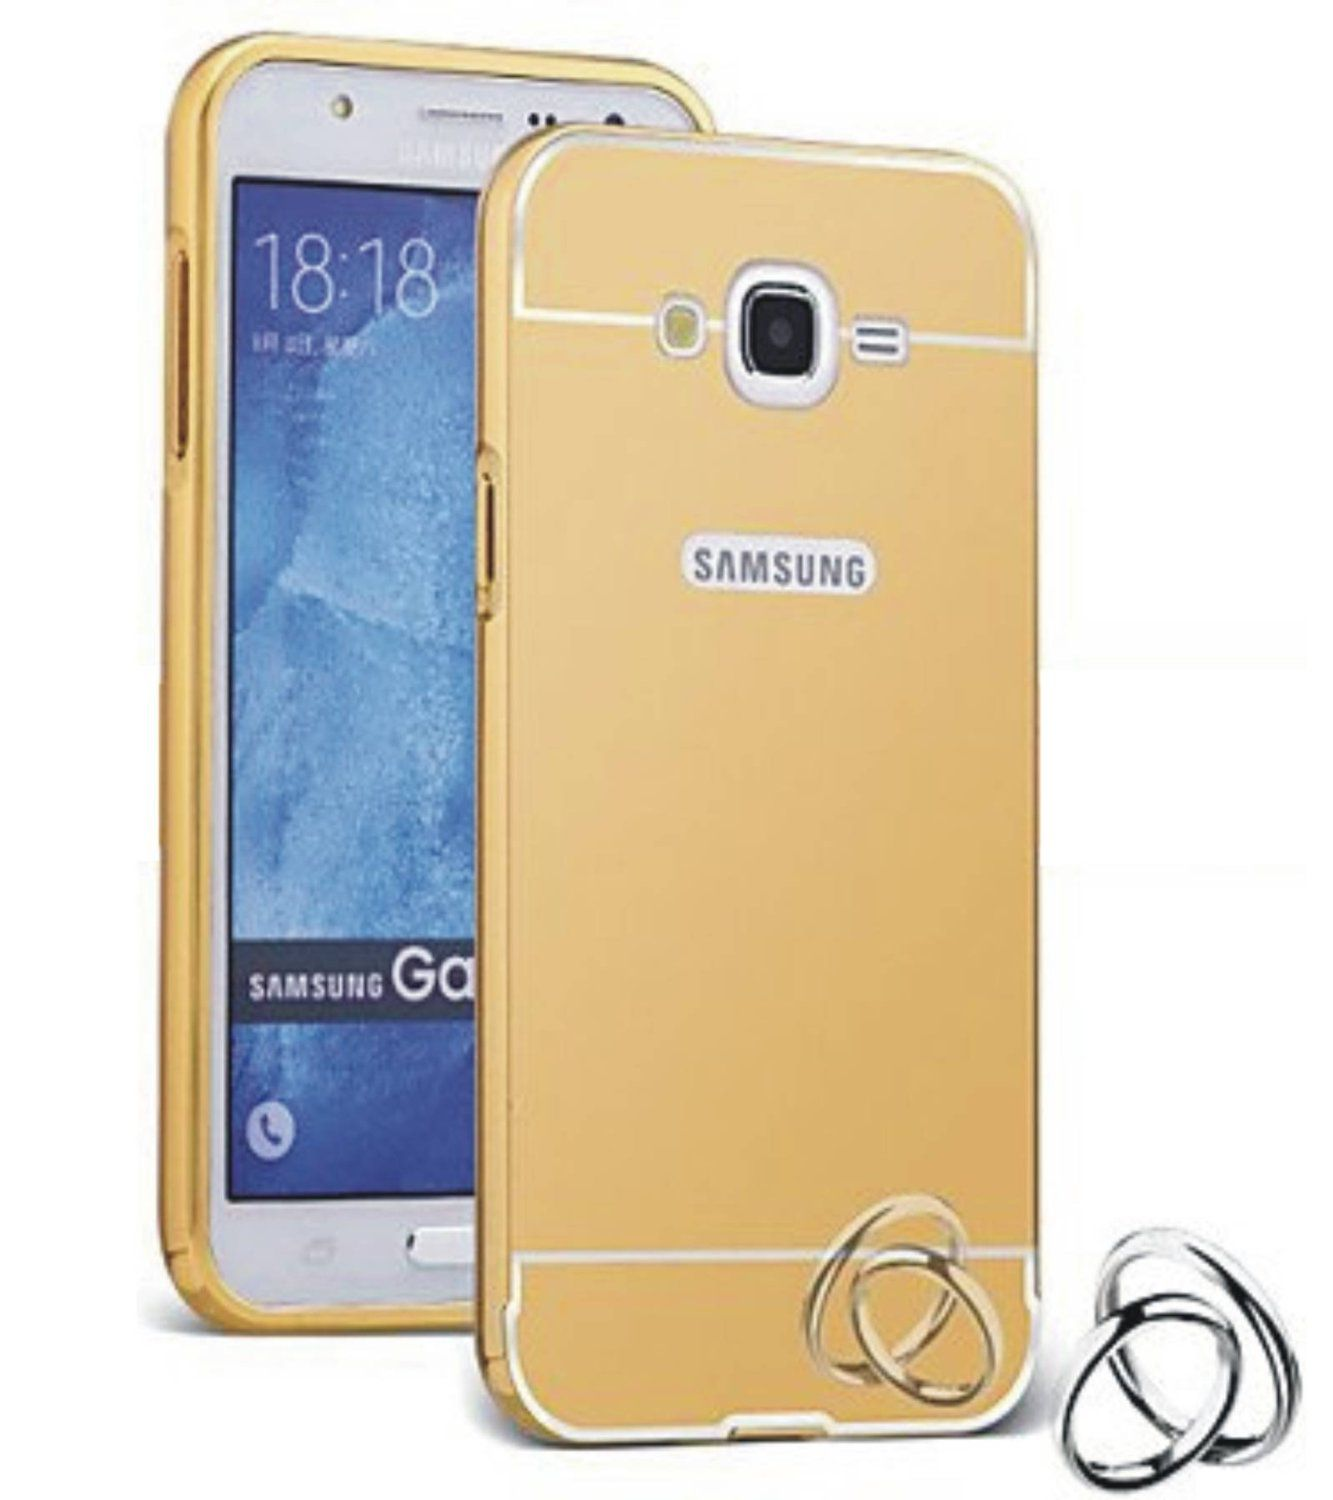 Style Crome Metal Bumper + Acrylic Mirror Back Cover Case For Samsung  J2  Gold + Flexible Portable Thumb OK Stand